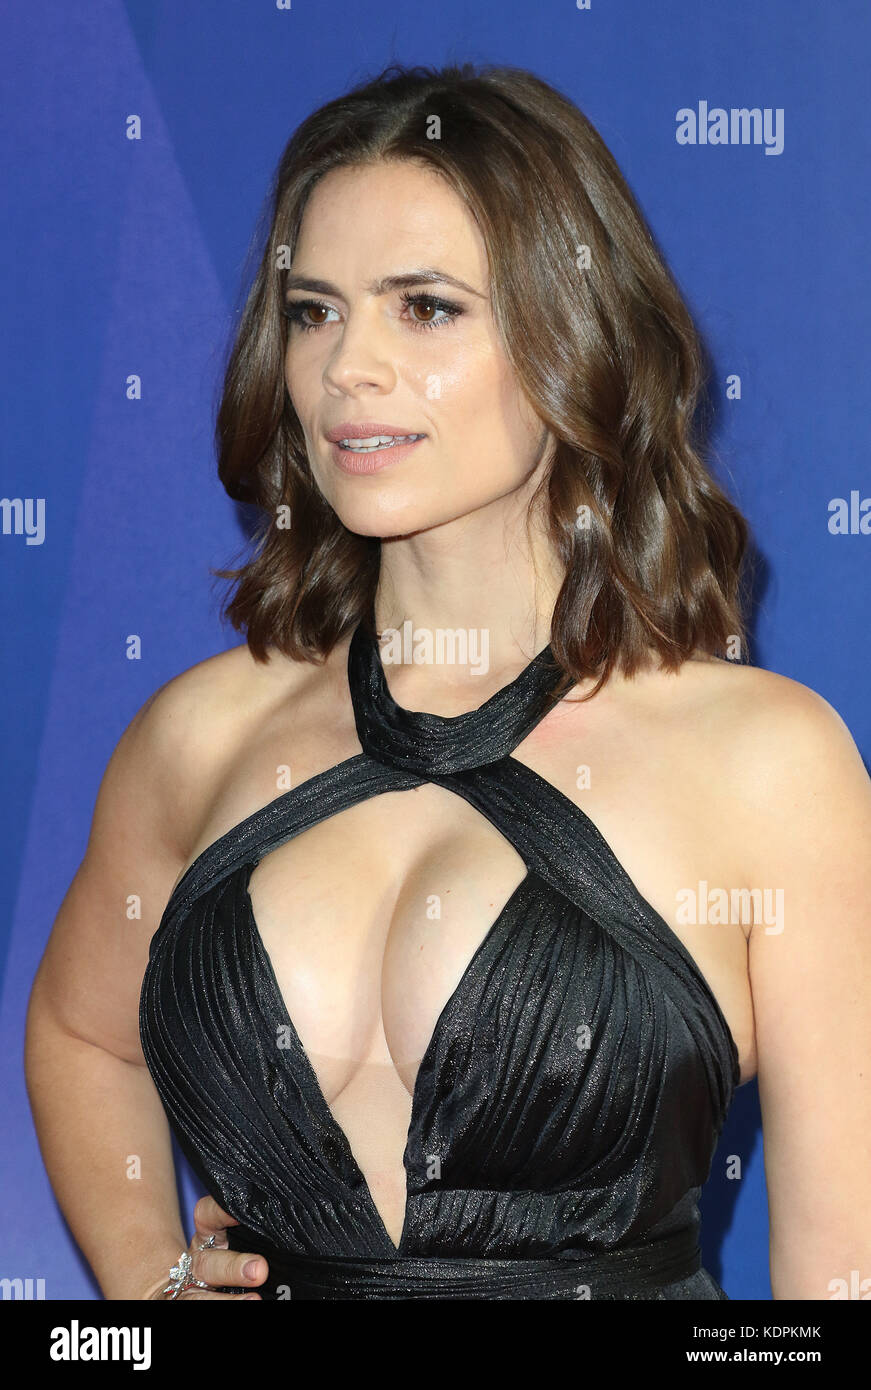 Hayley Atwell Stock Photos Amp Hayley Atwell Stock Images